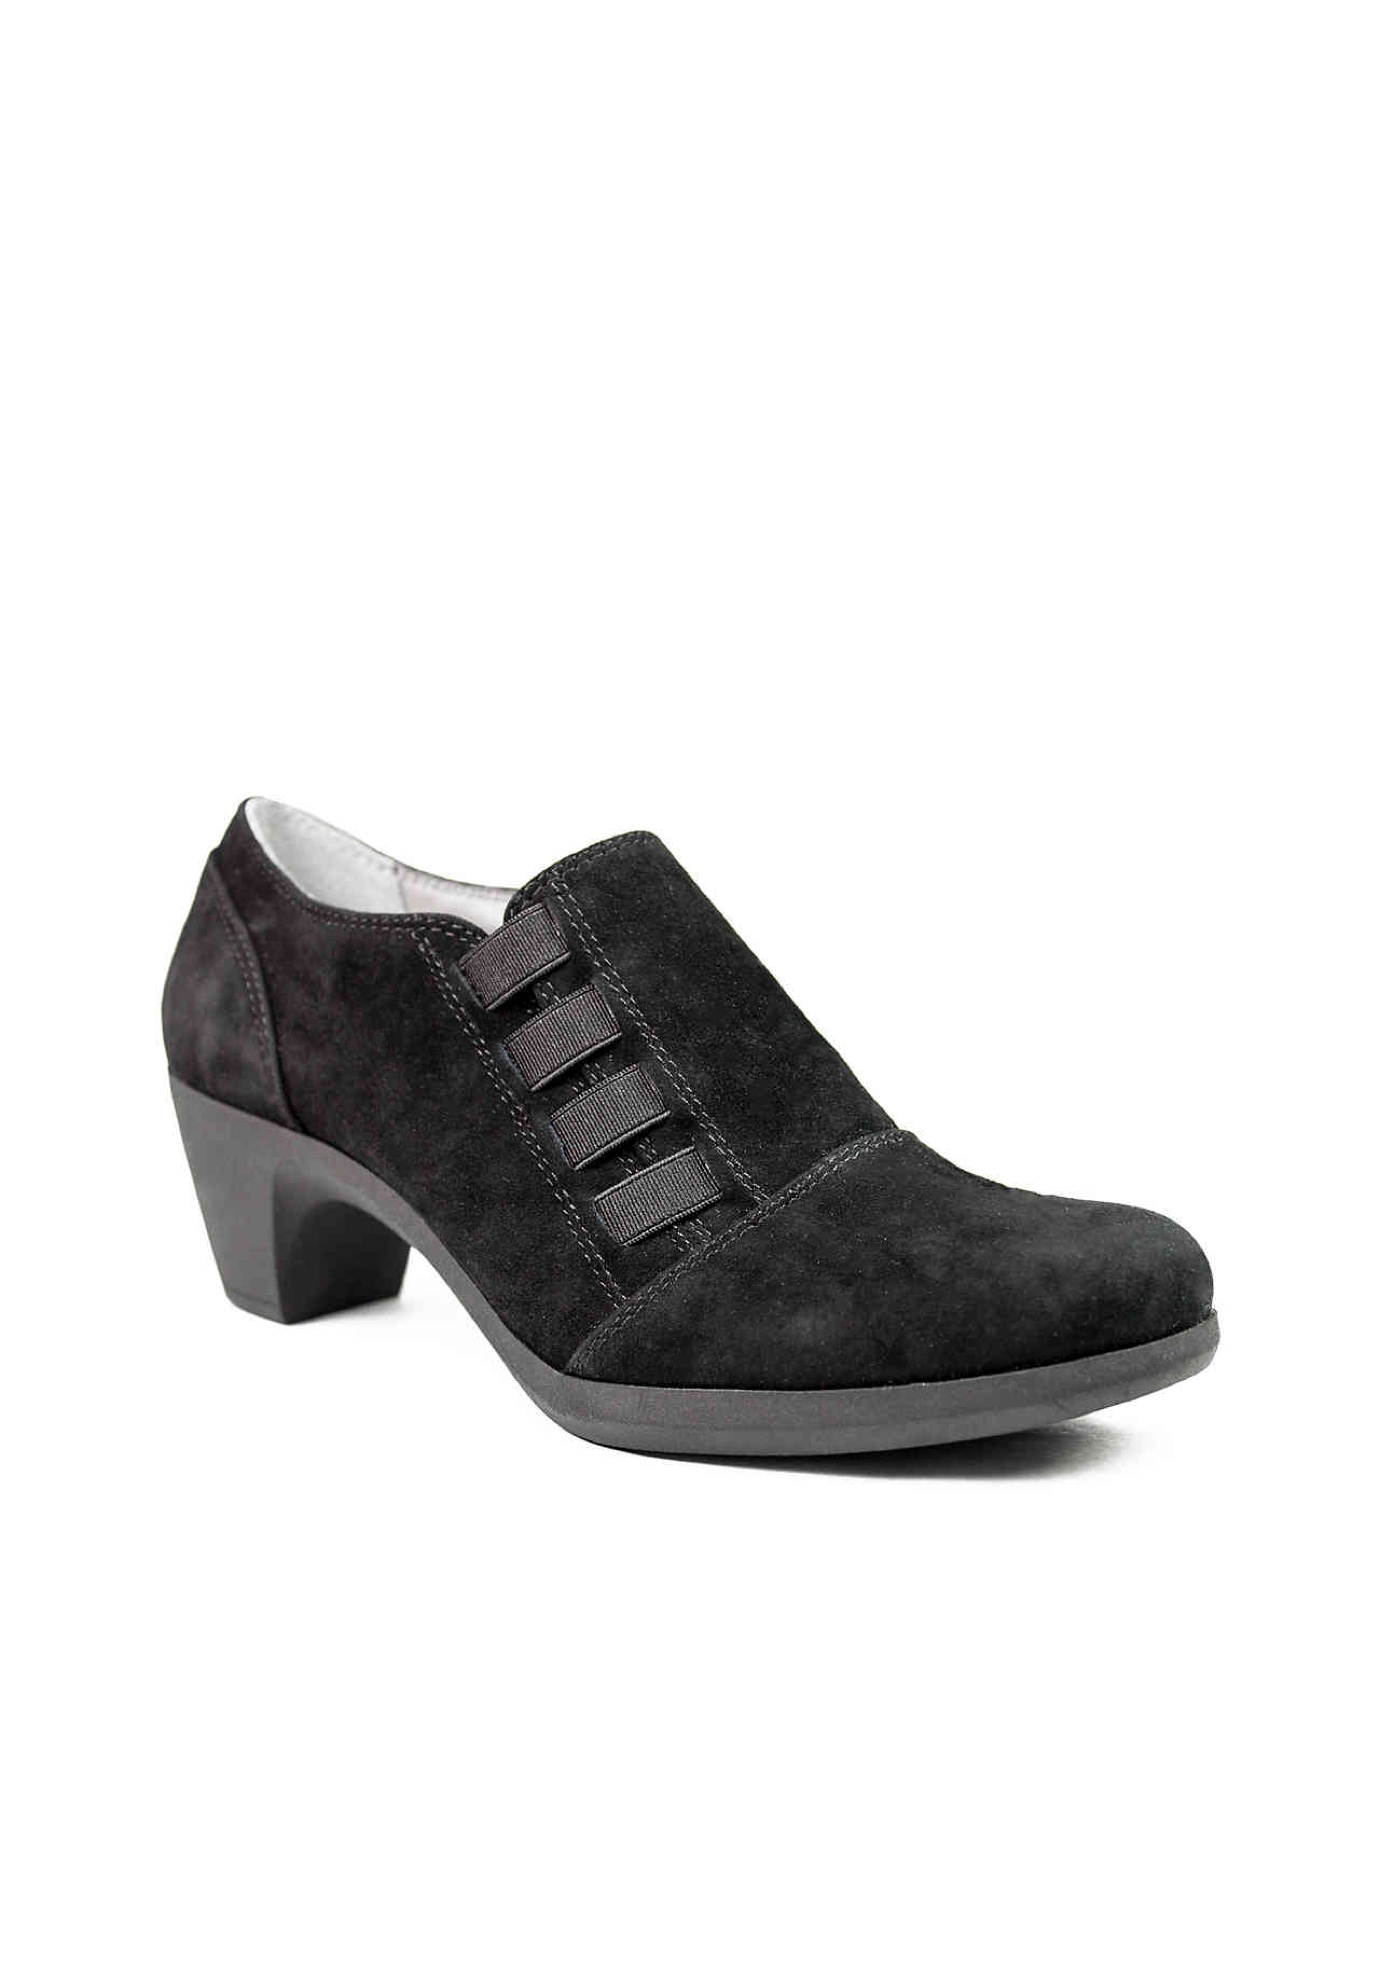 Arielle Shootie by Cliffs by White Mountain,